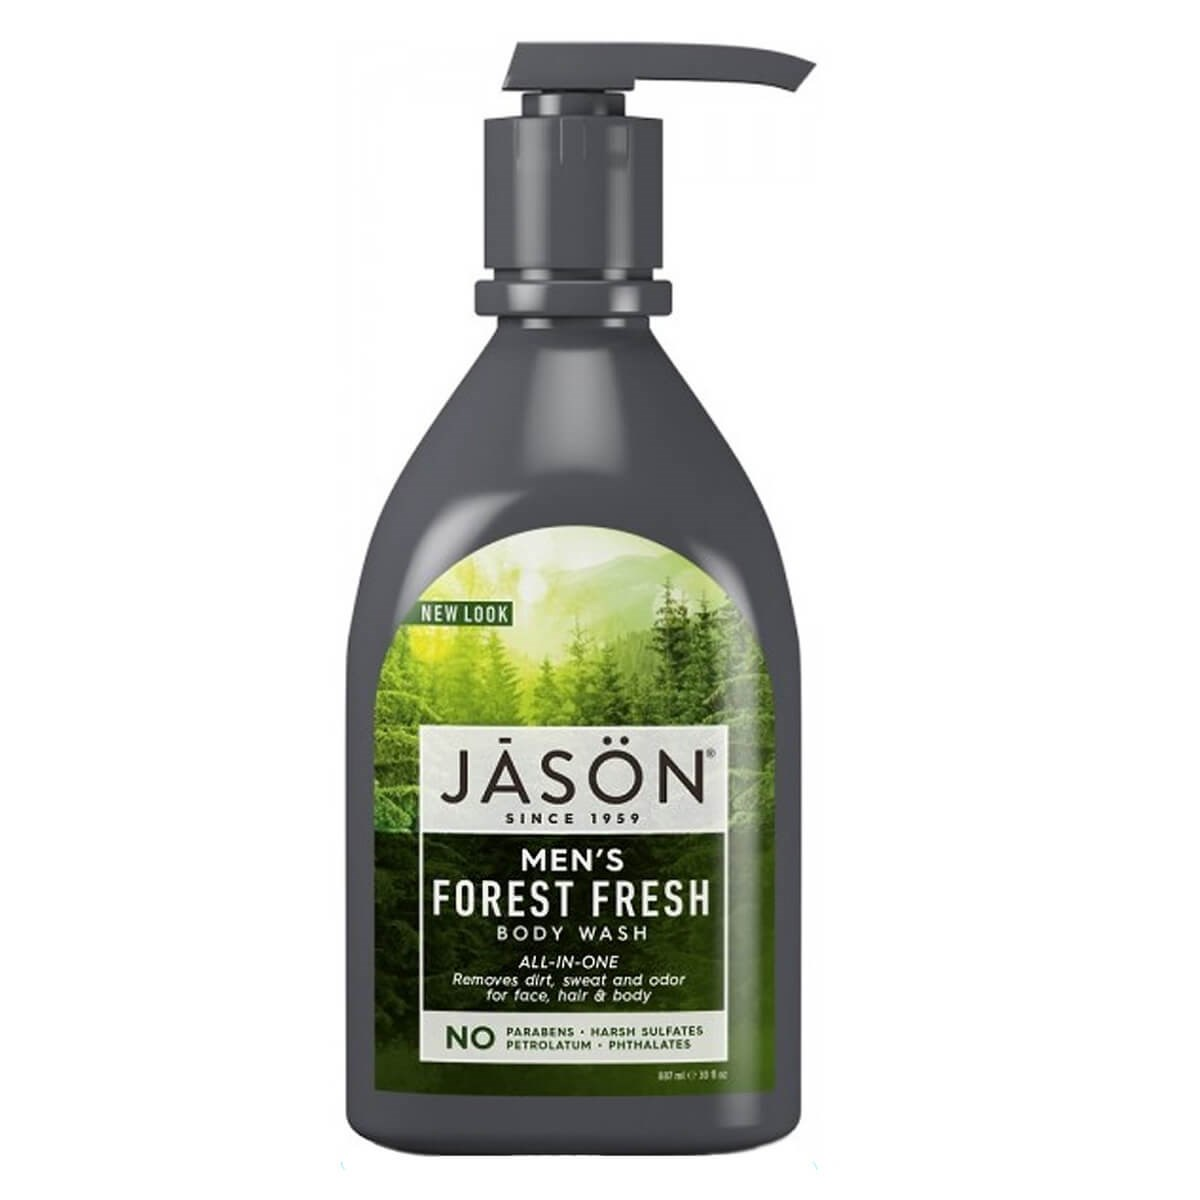 Jason ALL-IN-ONE Men's Body Wash Pump - Forest Fresh